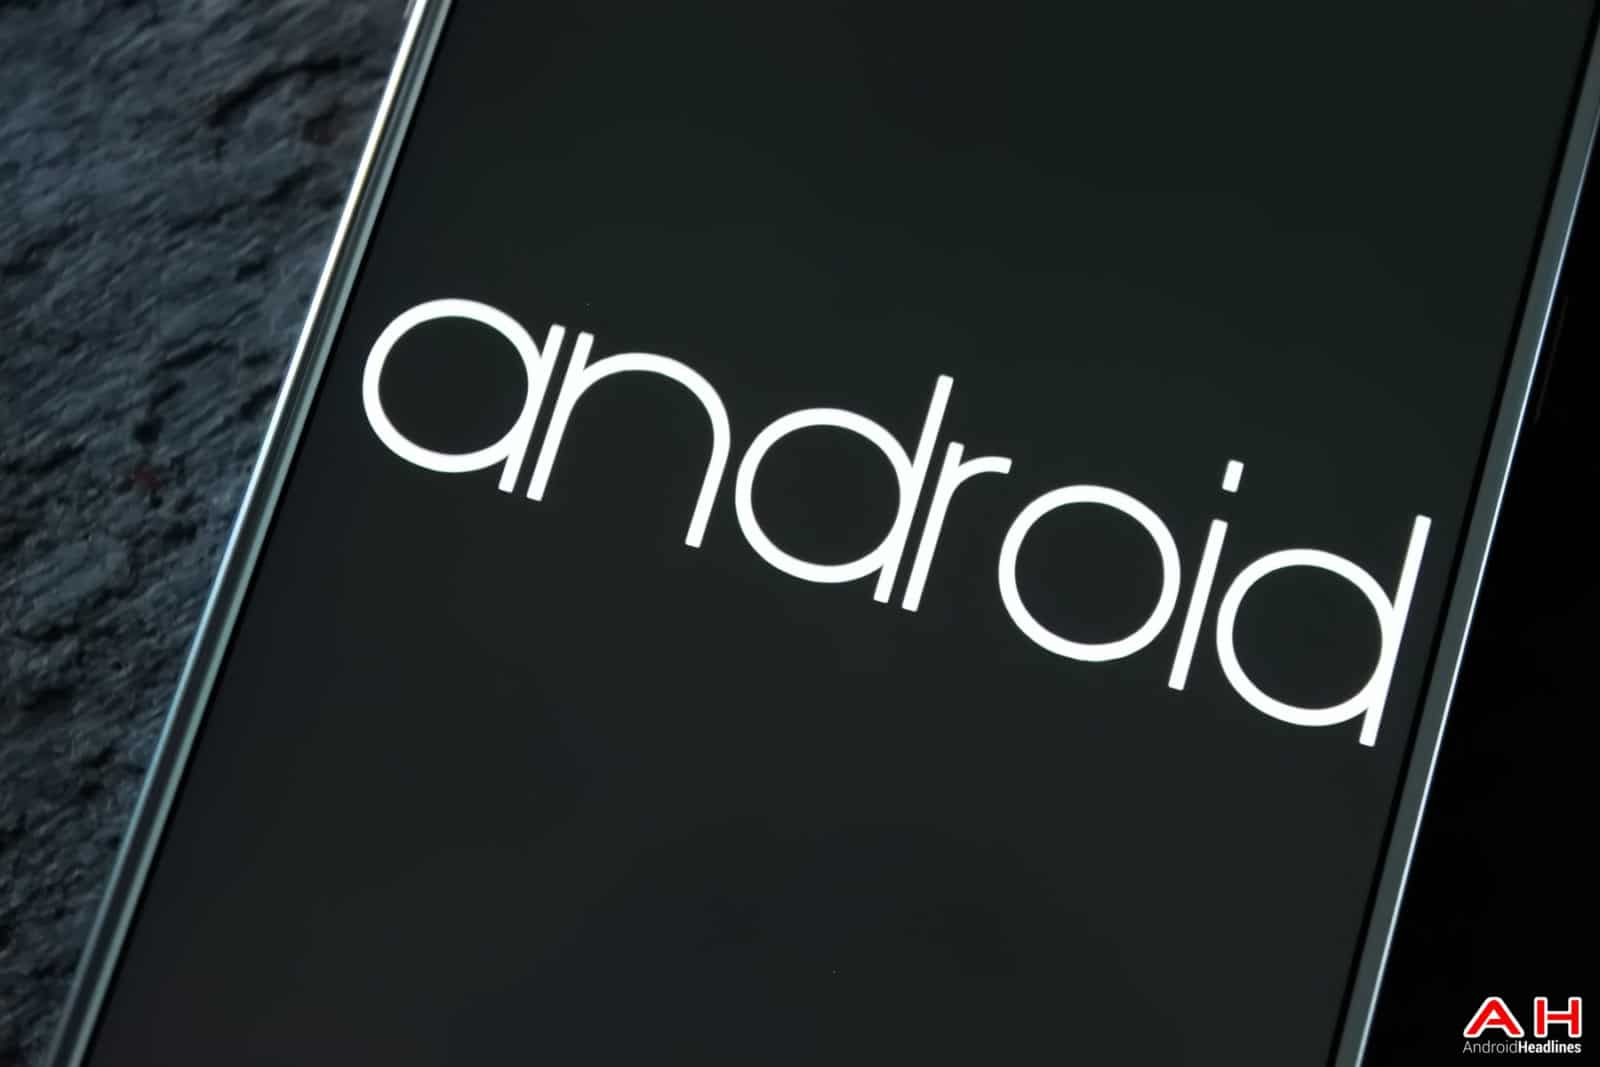 AH 2015 Android LOGO-103